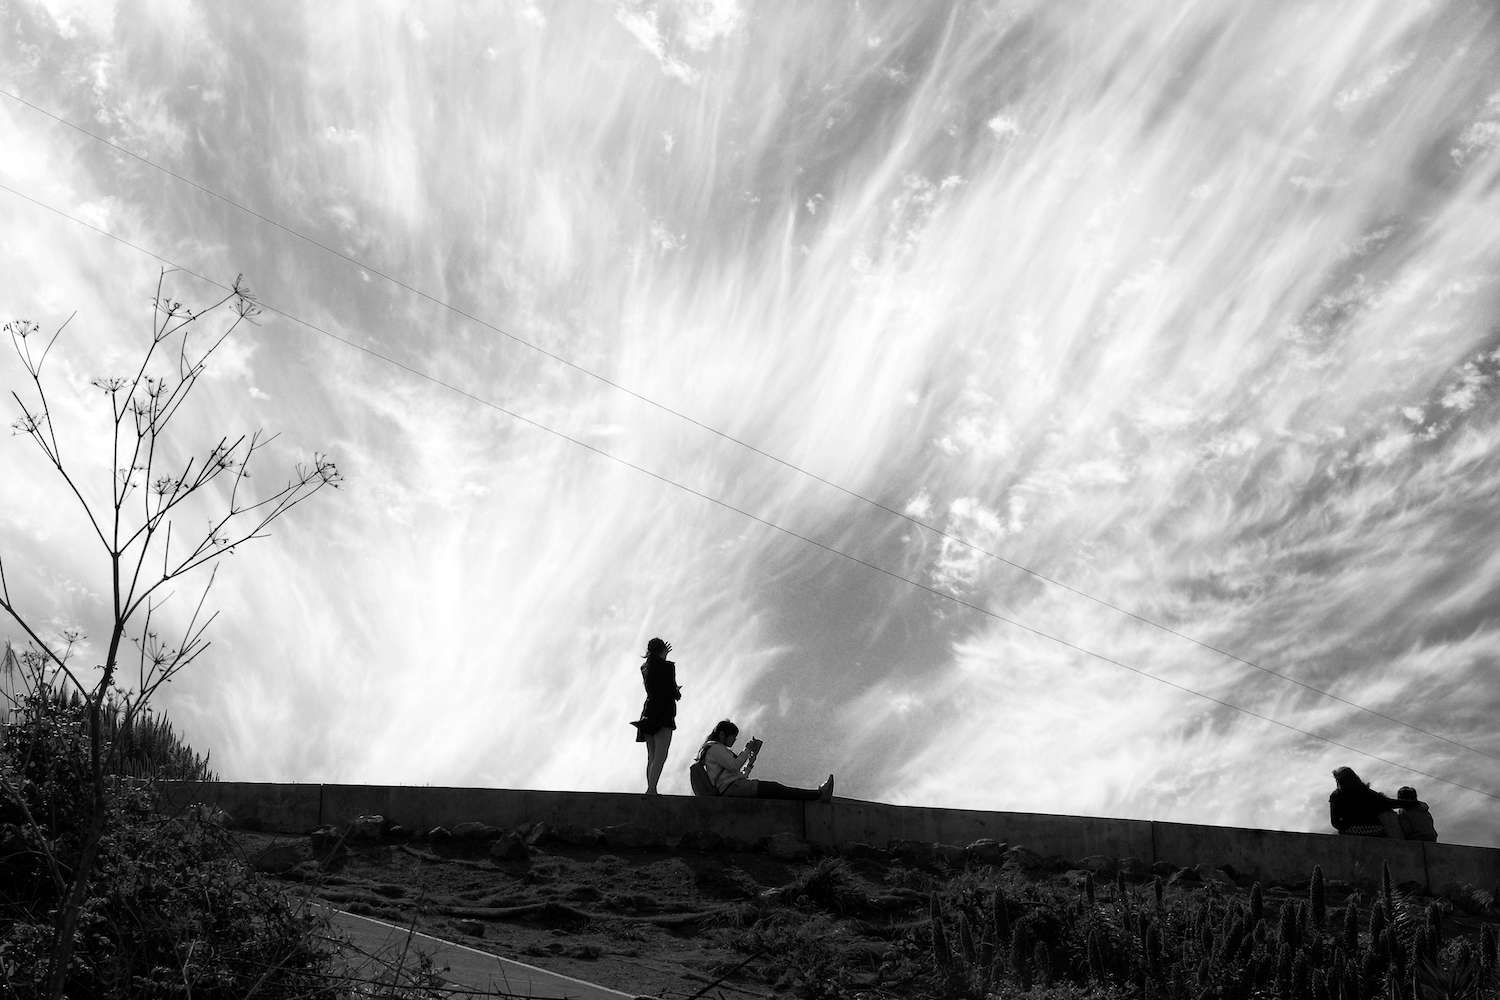 Black and white photo of wispy clouds